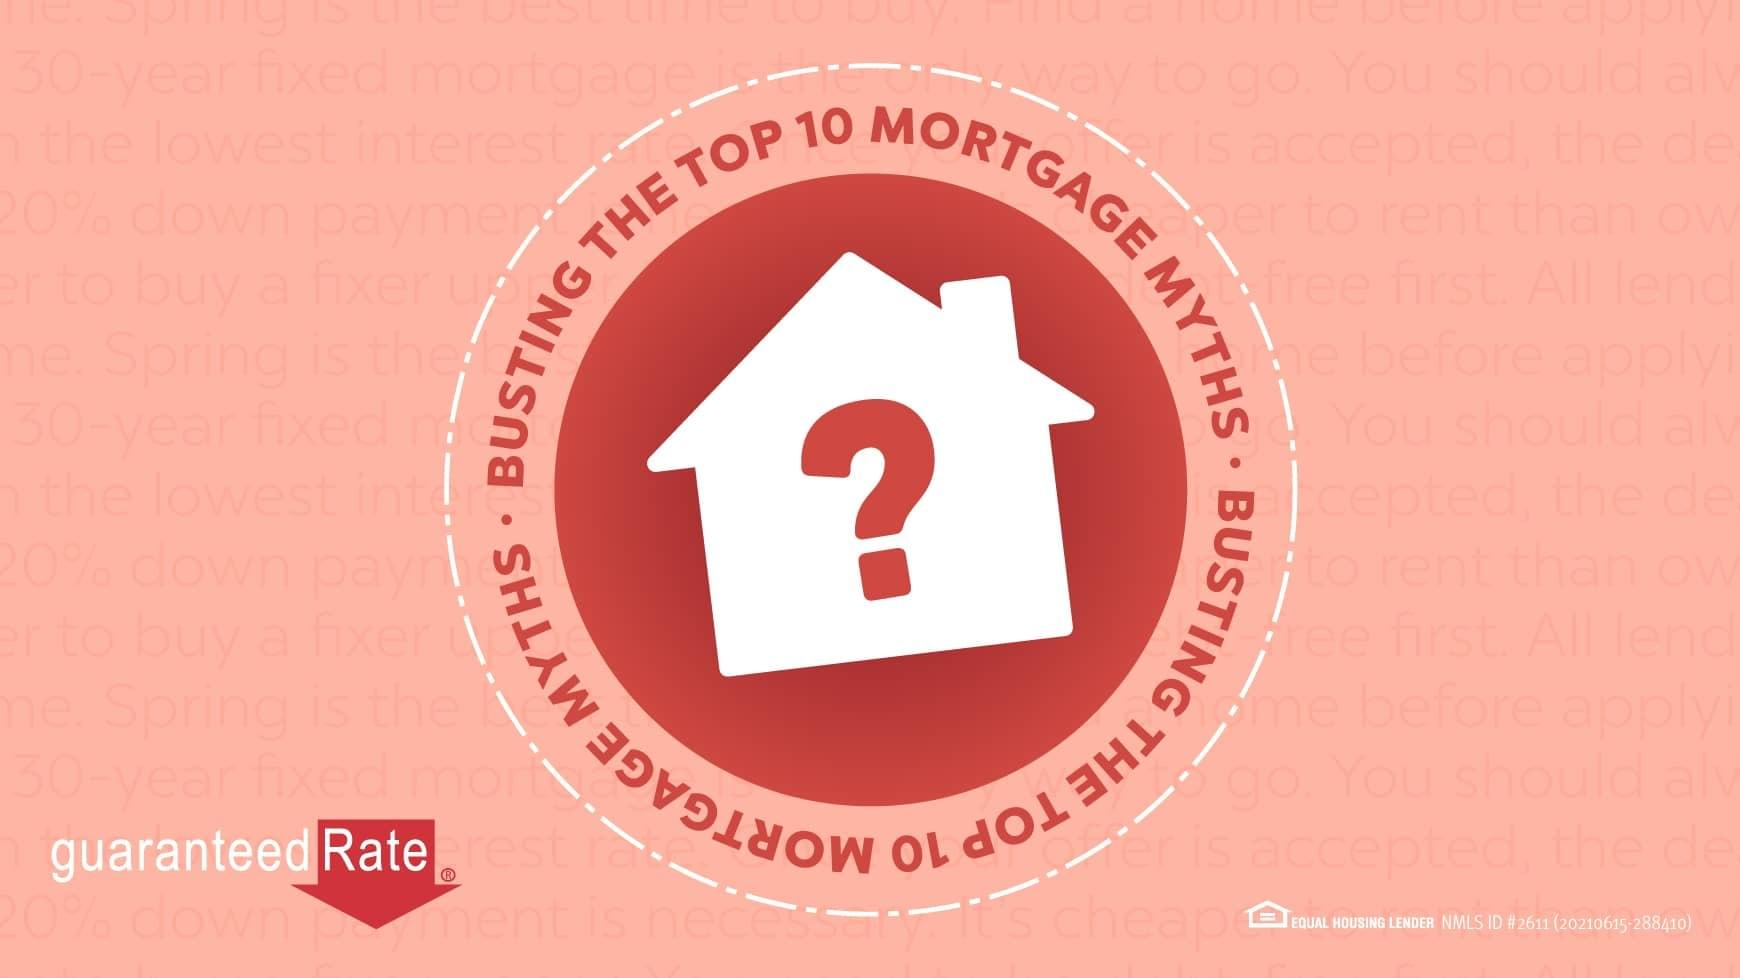 Top 10 myths about buying a home, busted